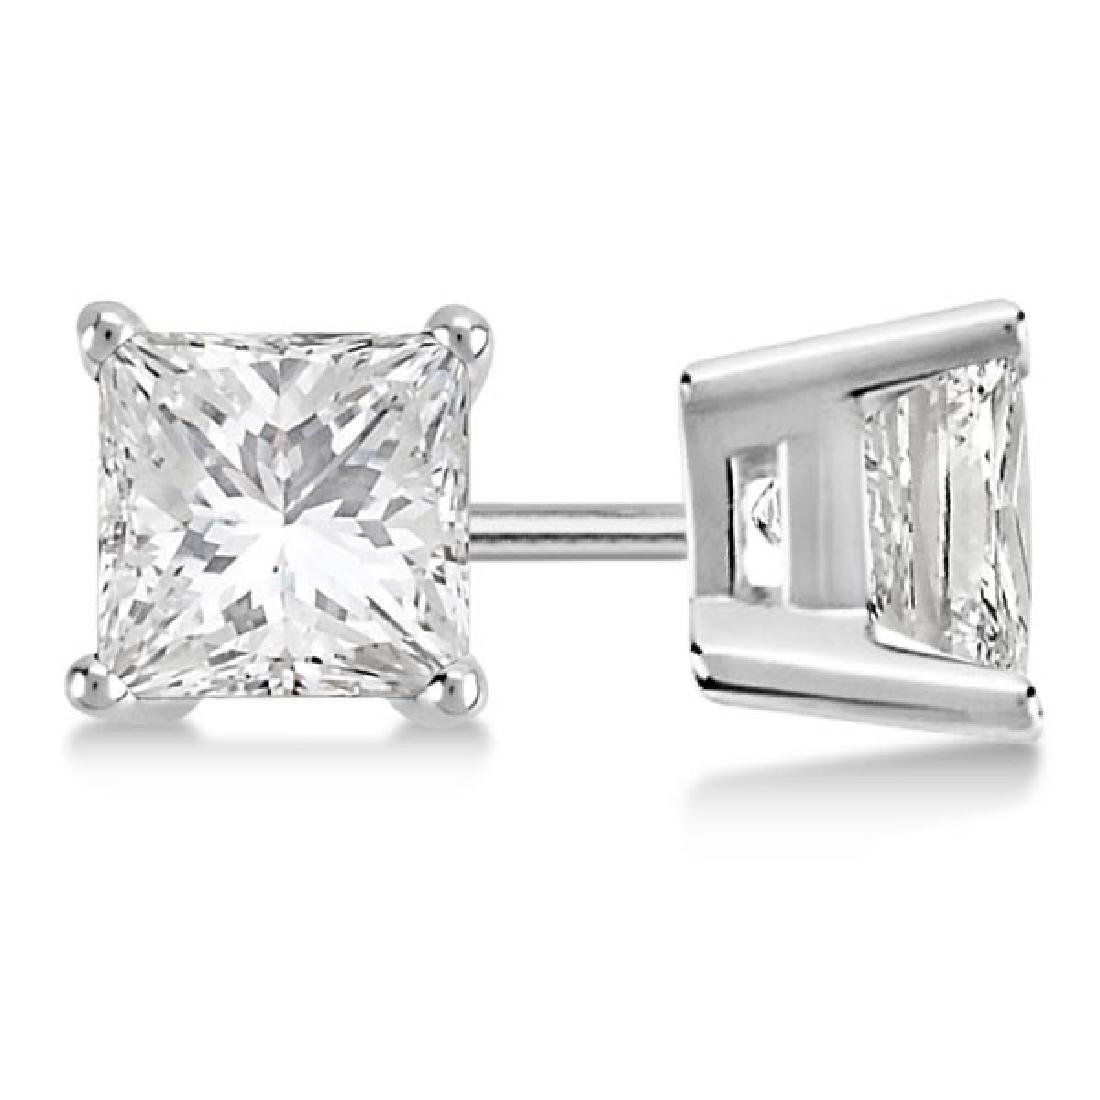 Certified 1 CTW Princess Diamond Stud Earrings E/SI1